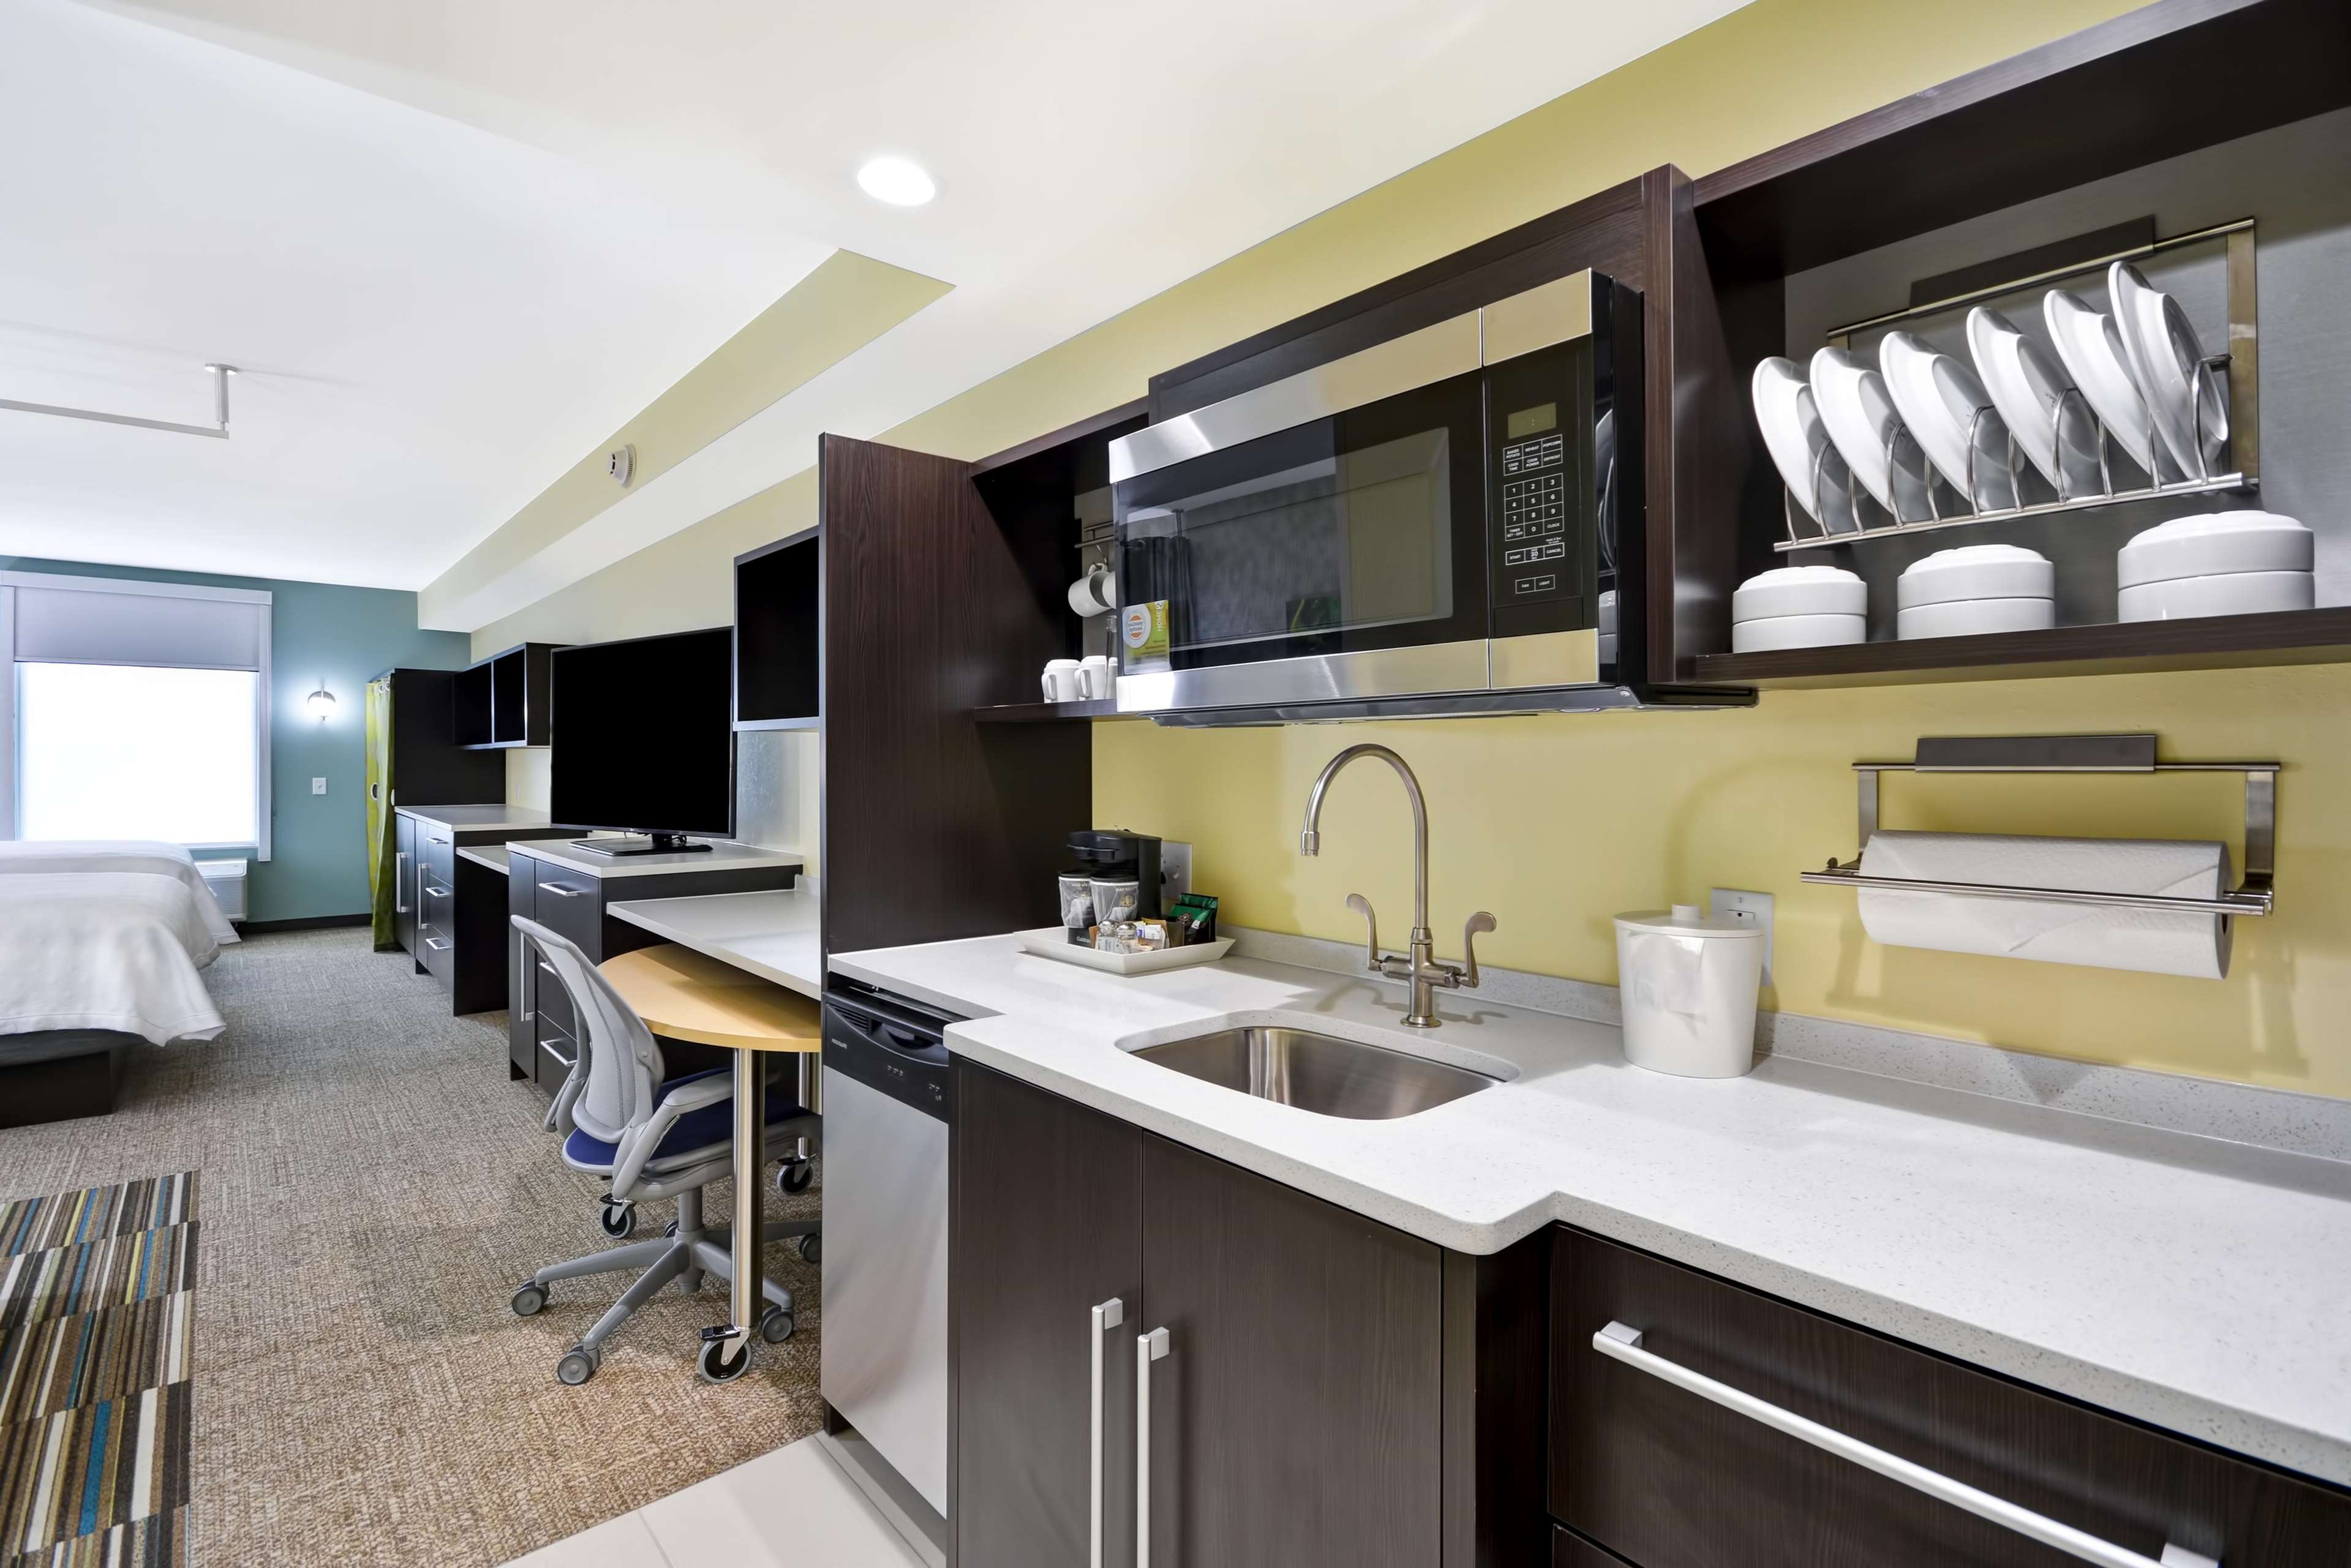 Home2 Suites By Hilton Maumee Toledo image 14